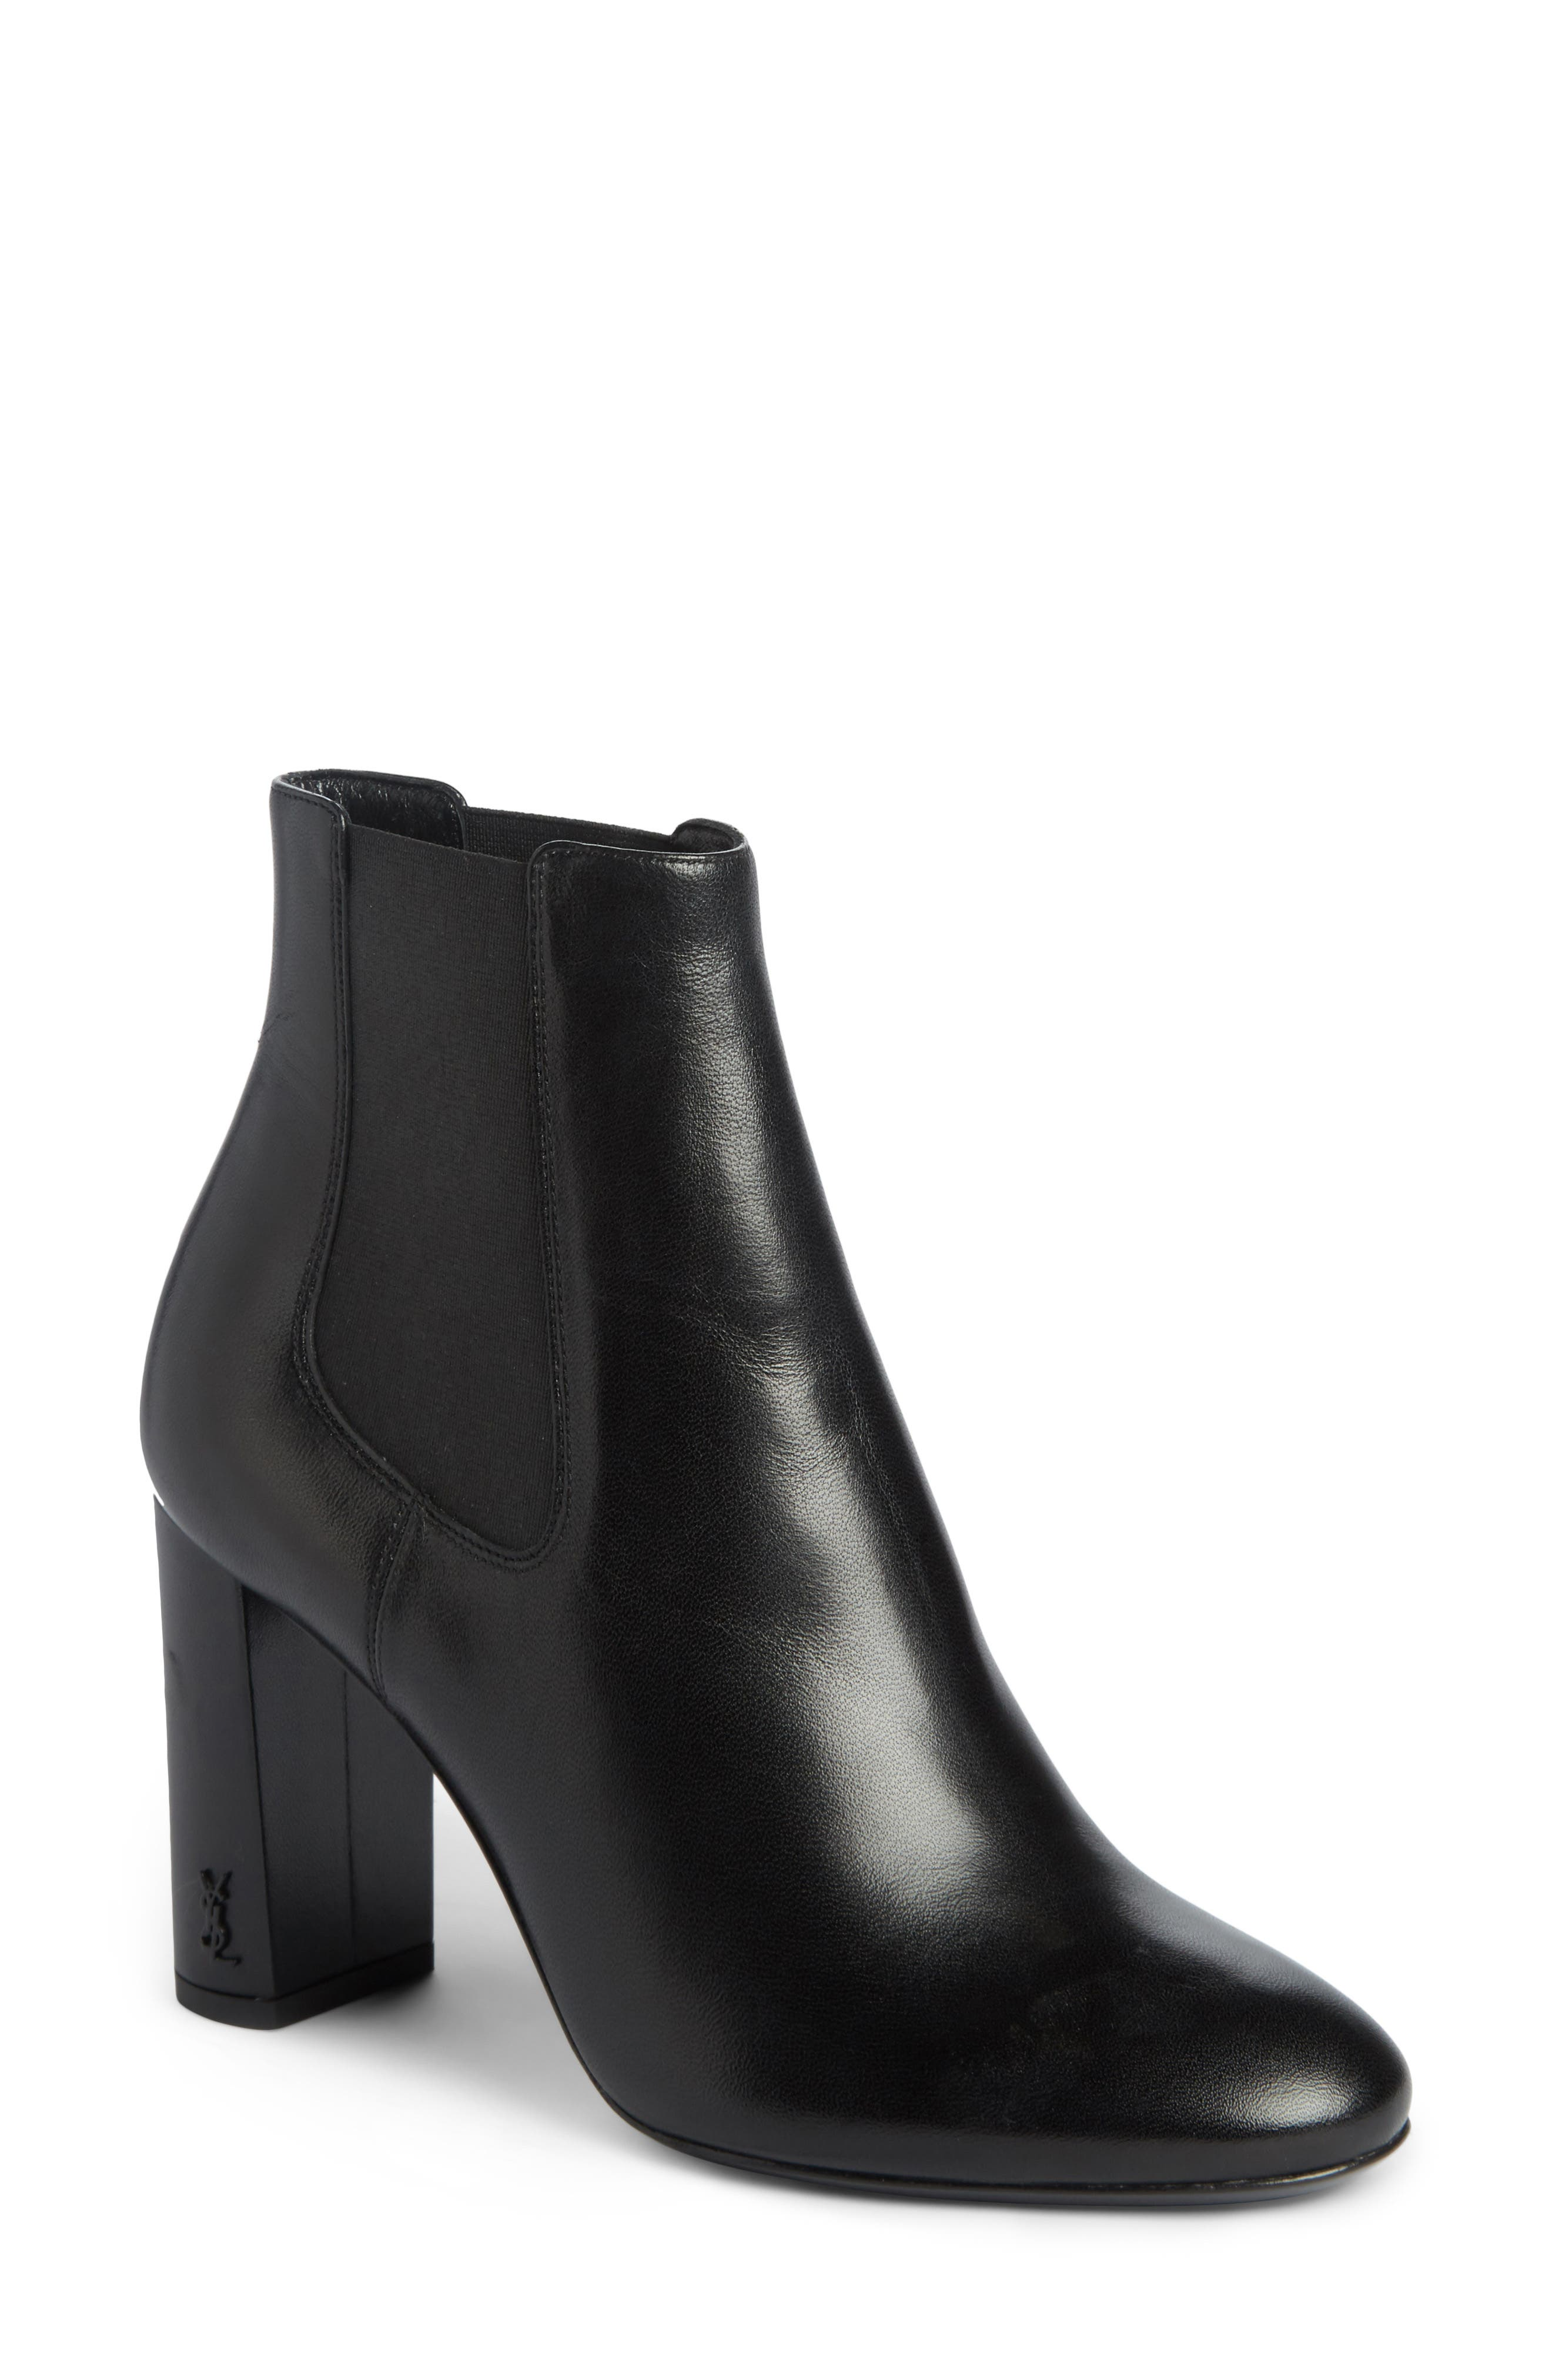 Buy Cheap Saint Laurent Women Ankle Boot Ankle Boots Saint Laurent womens Black SAINT LAURENT Womens Ankle Boots